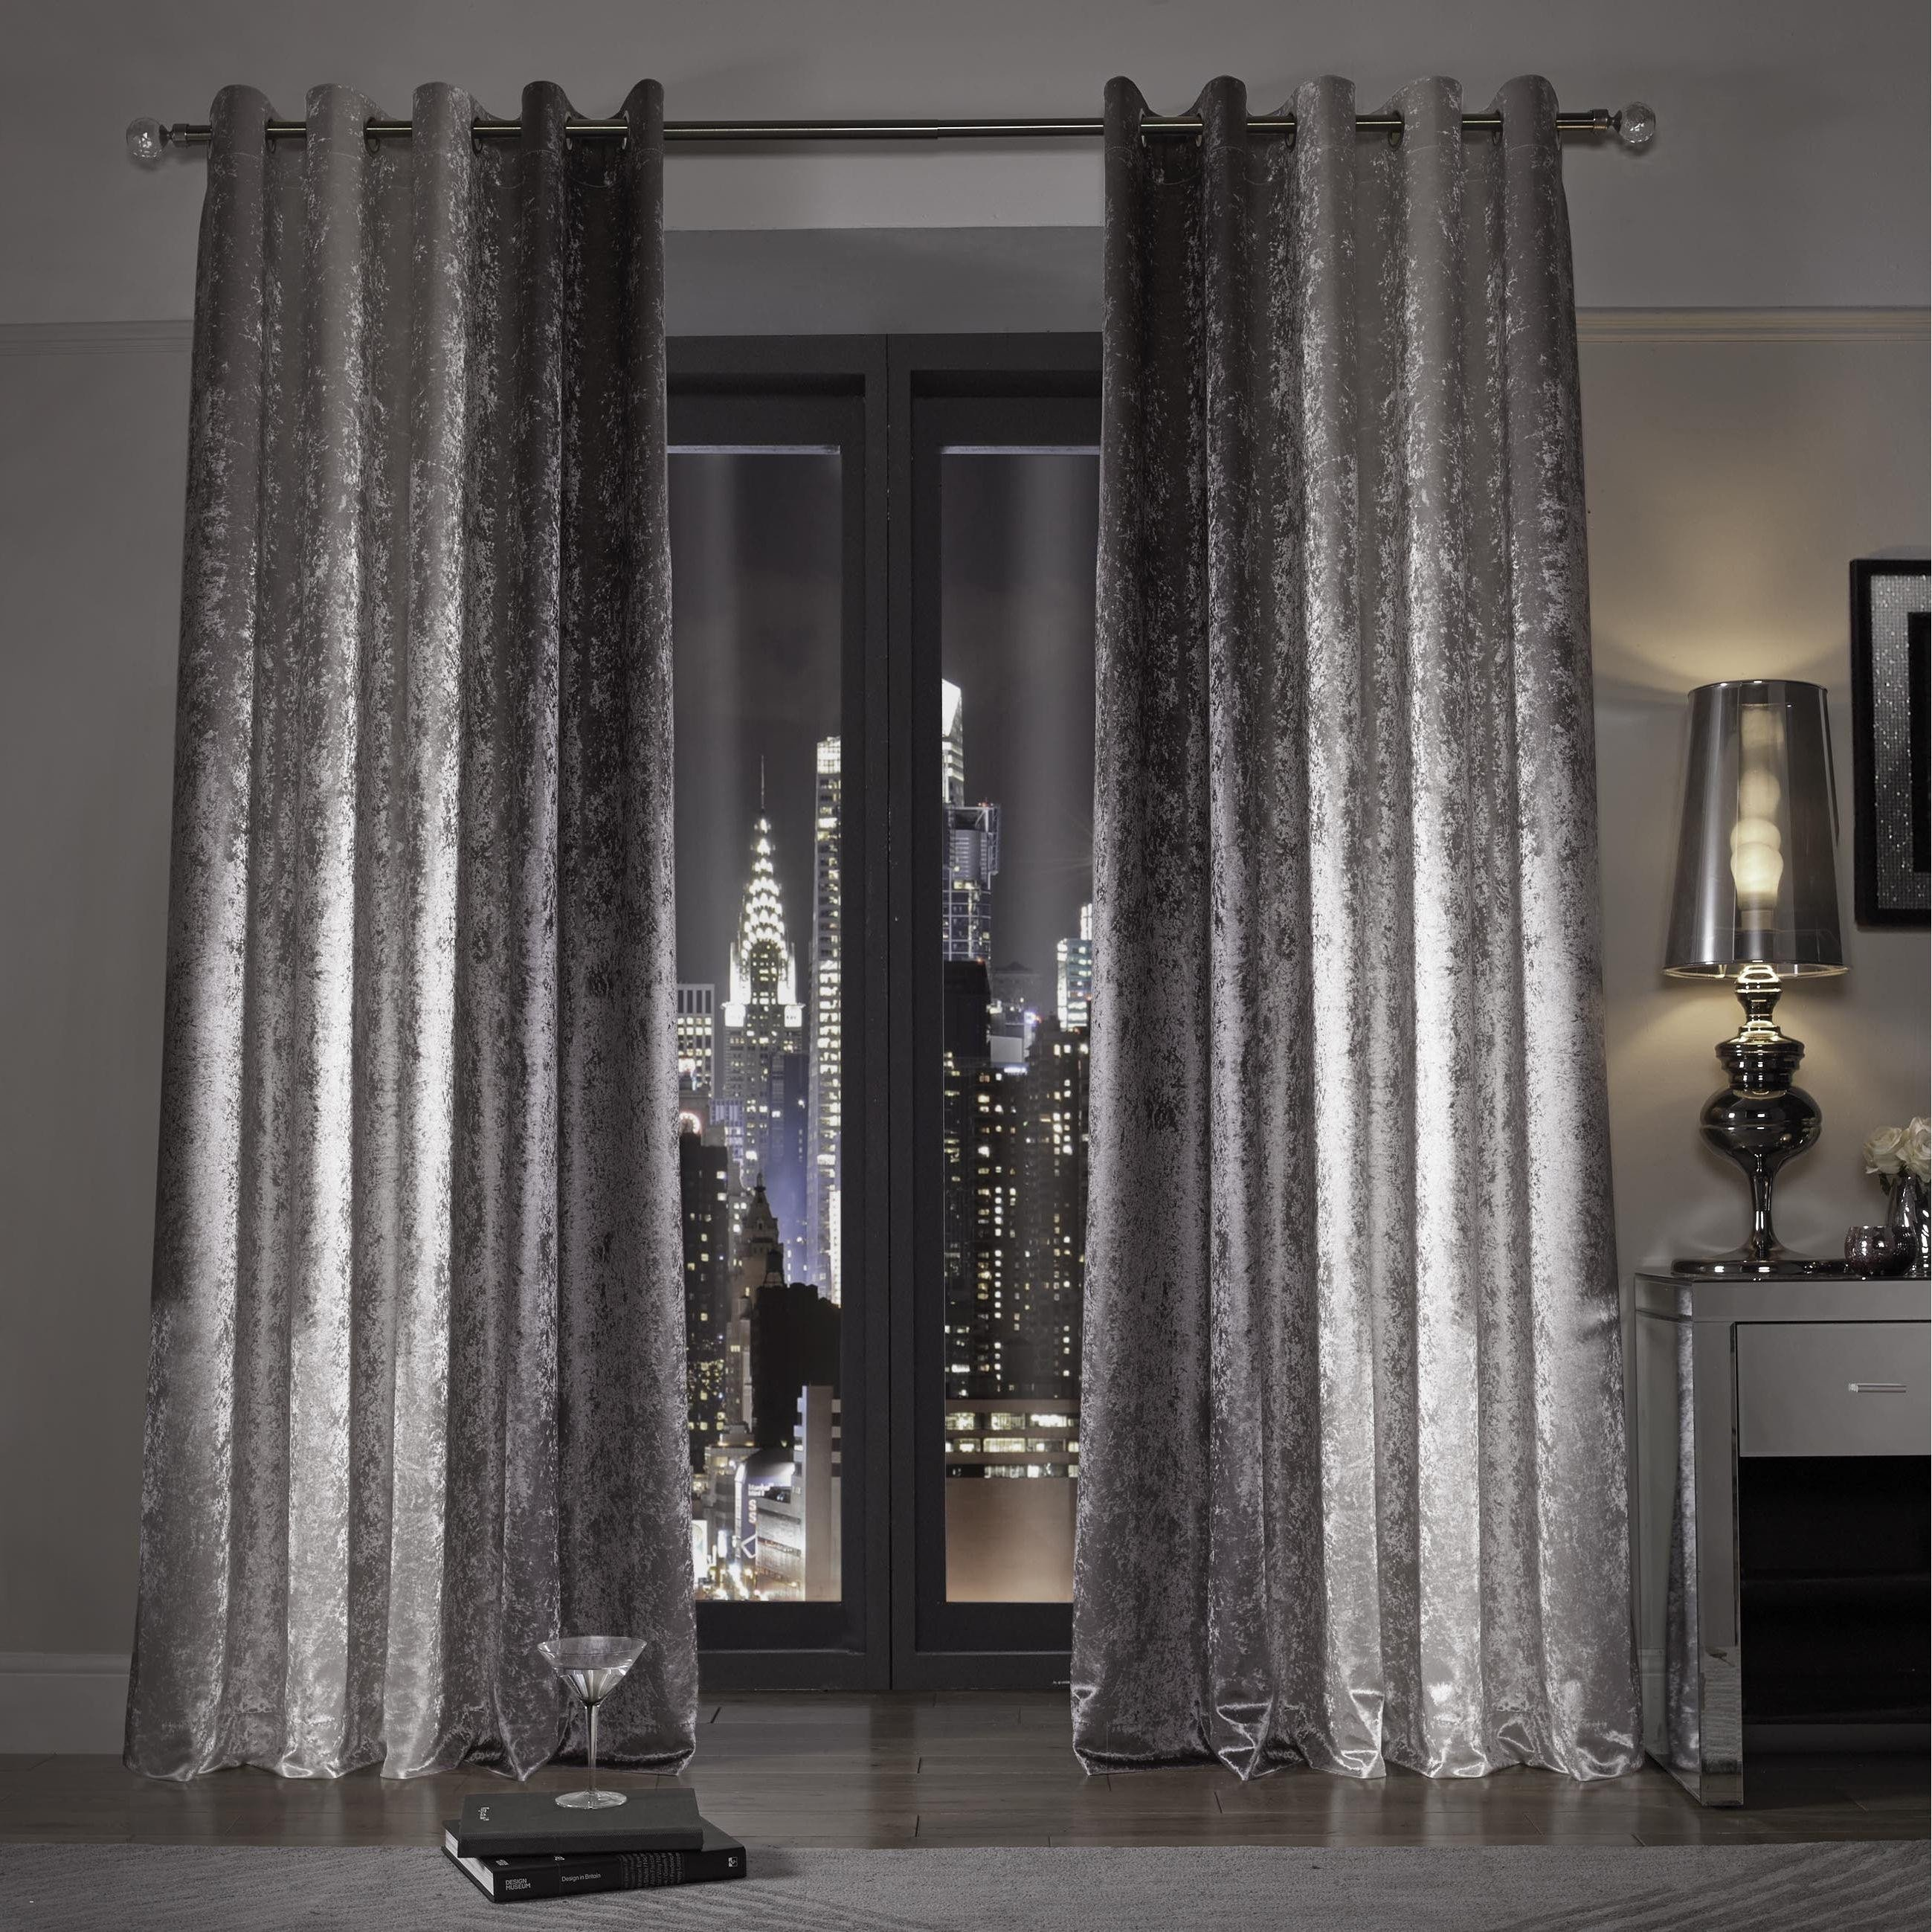 Best Curtains for Bedroom New 21 Amazing Window Sill Vases